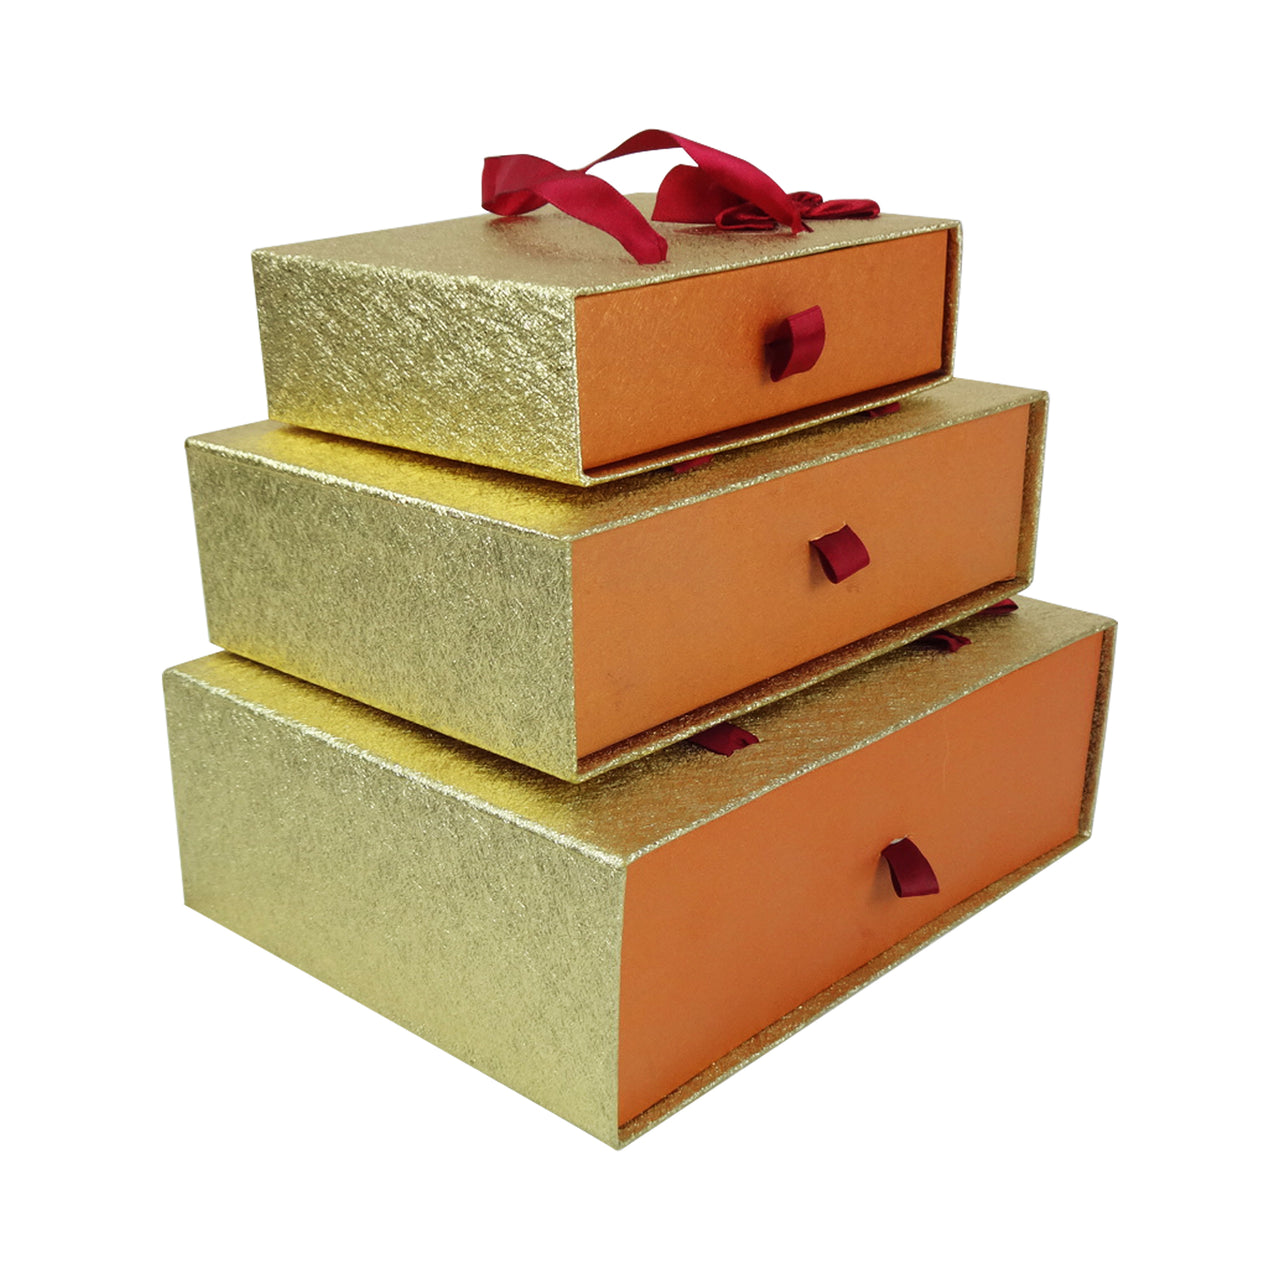 Metallic Gold / Red Gift Box - Set Of 3